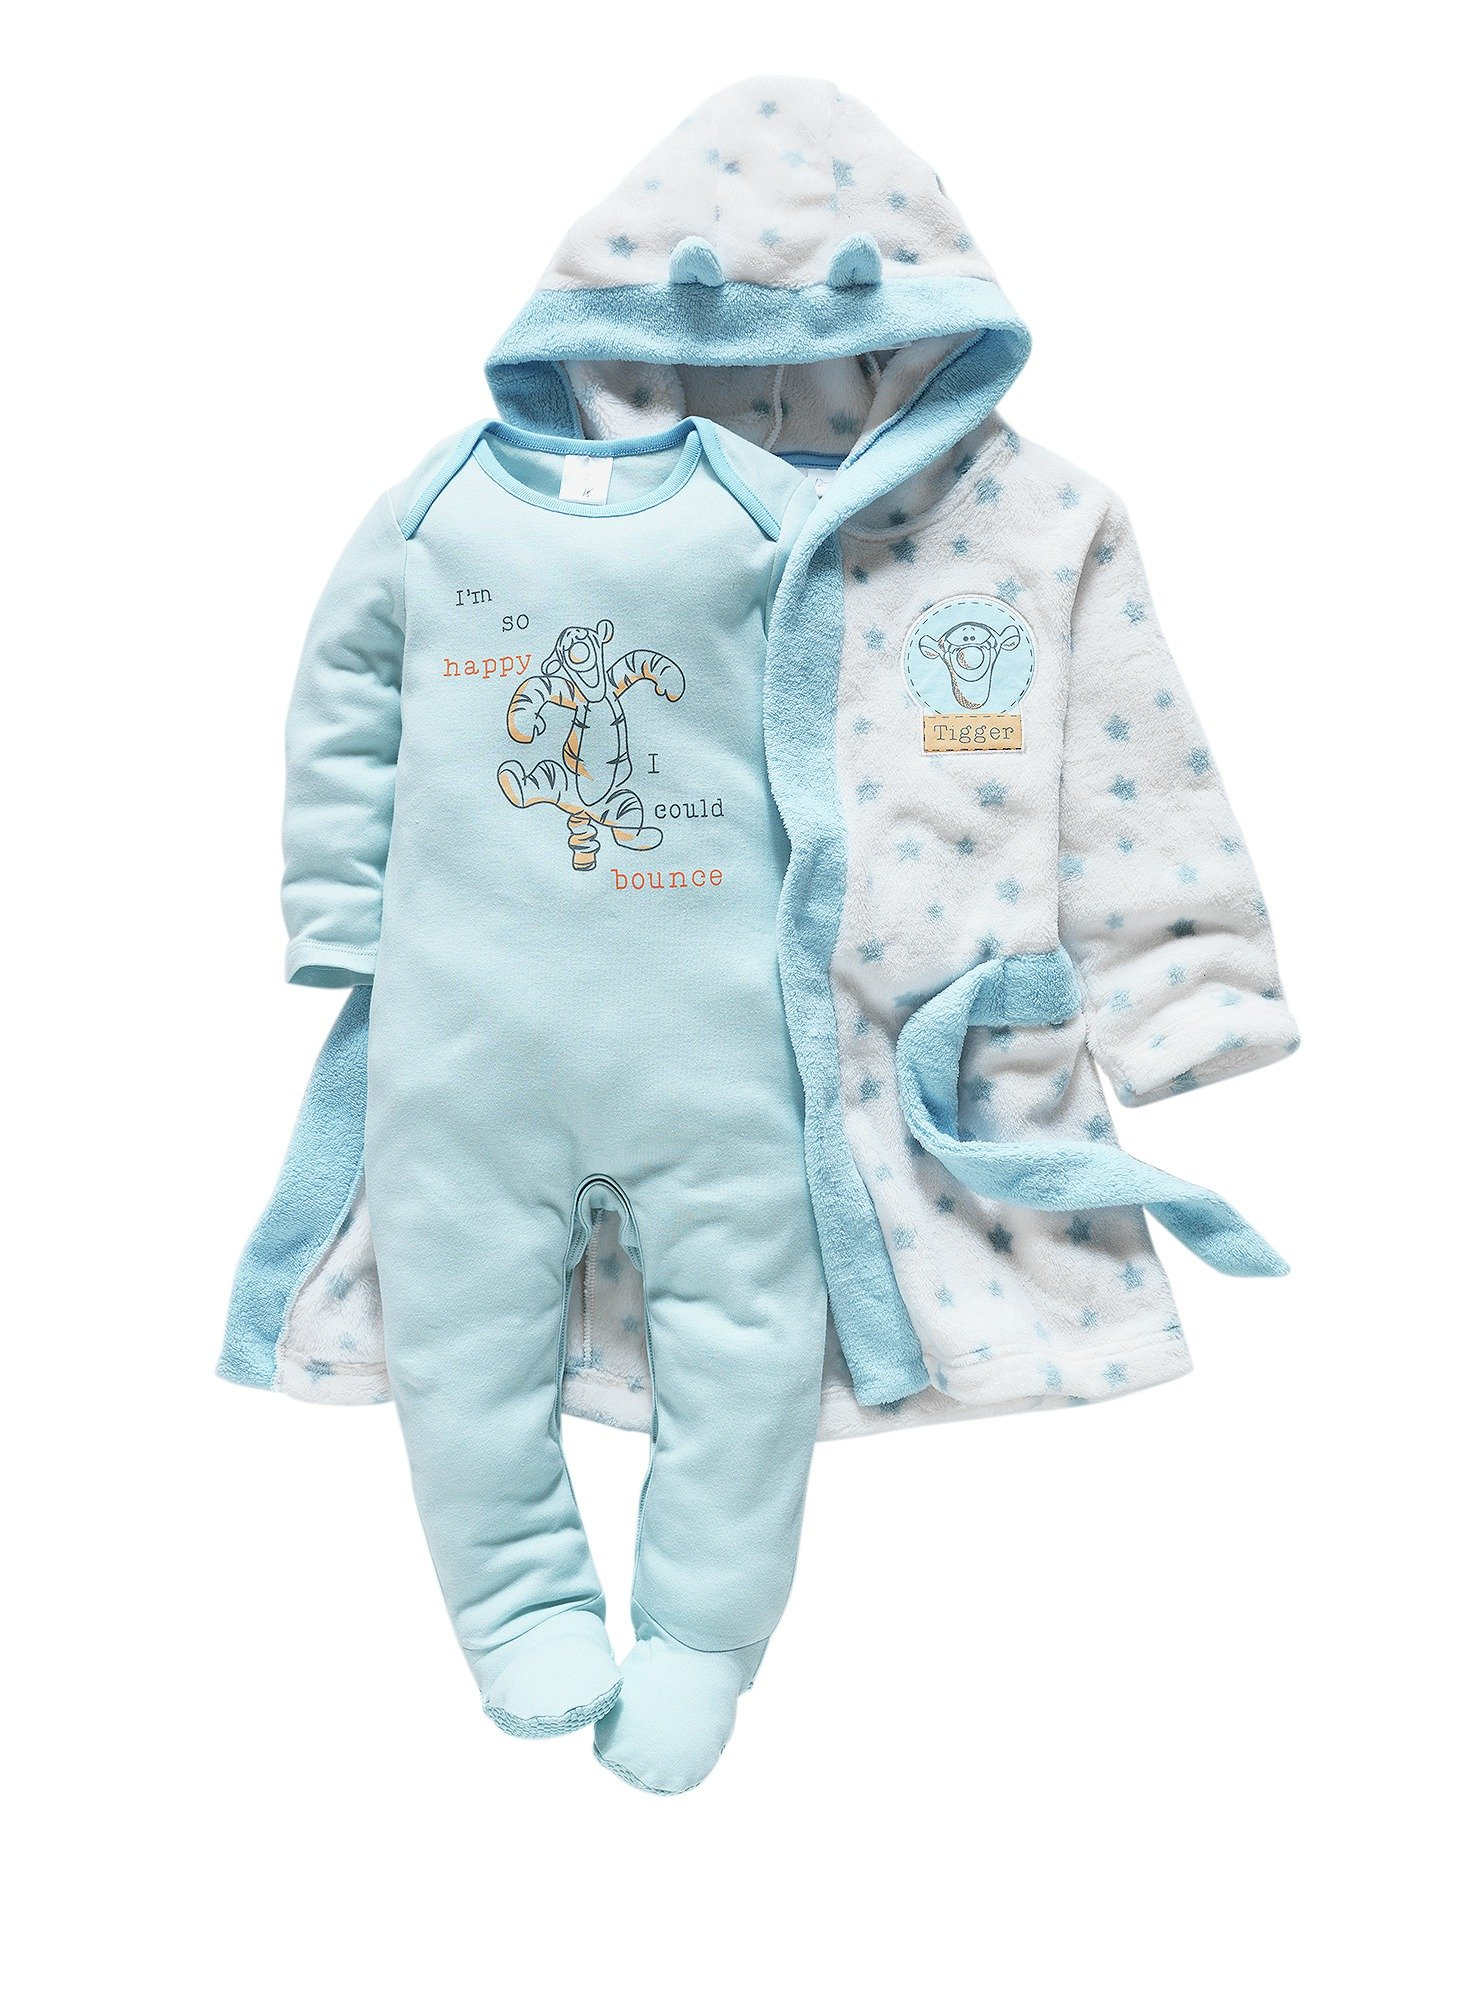 Image of Tigger - Baby Blue Gown and Pyjama Set - 6-9 Months